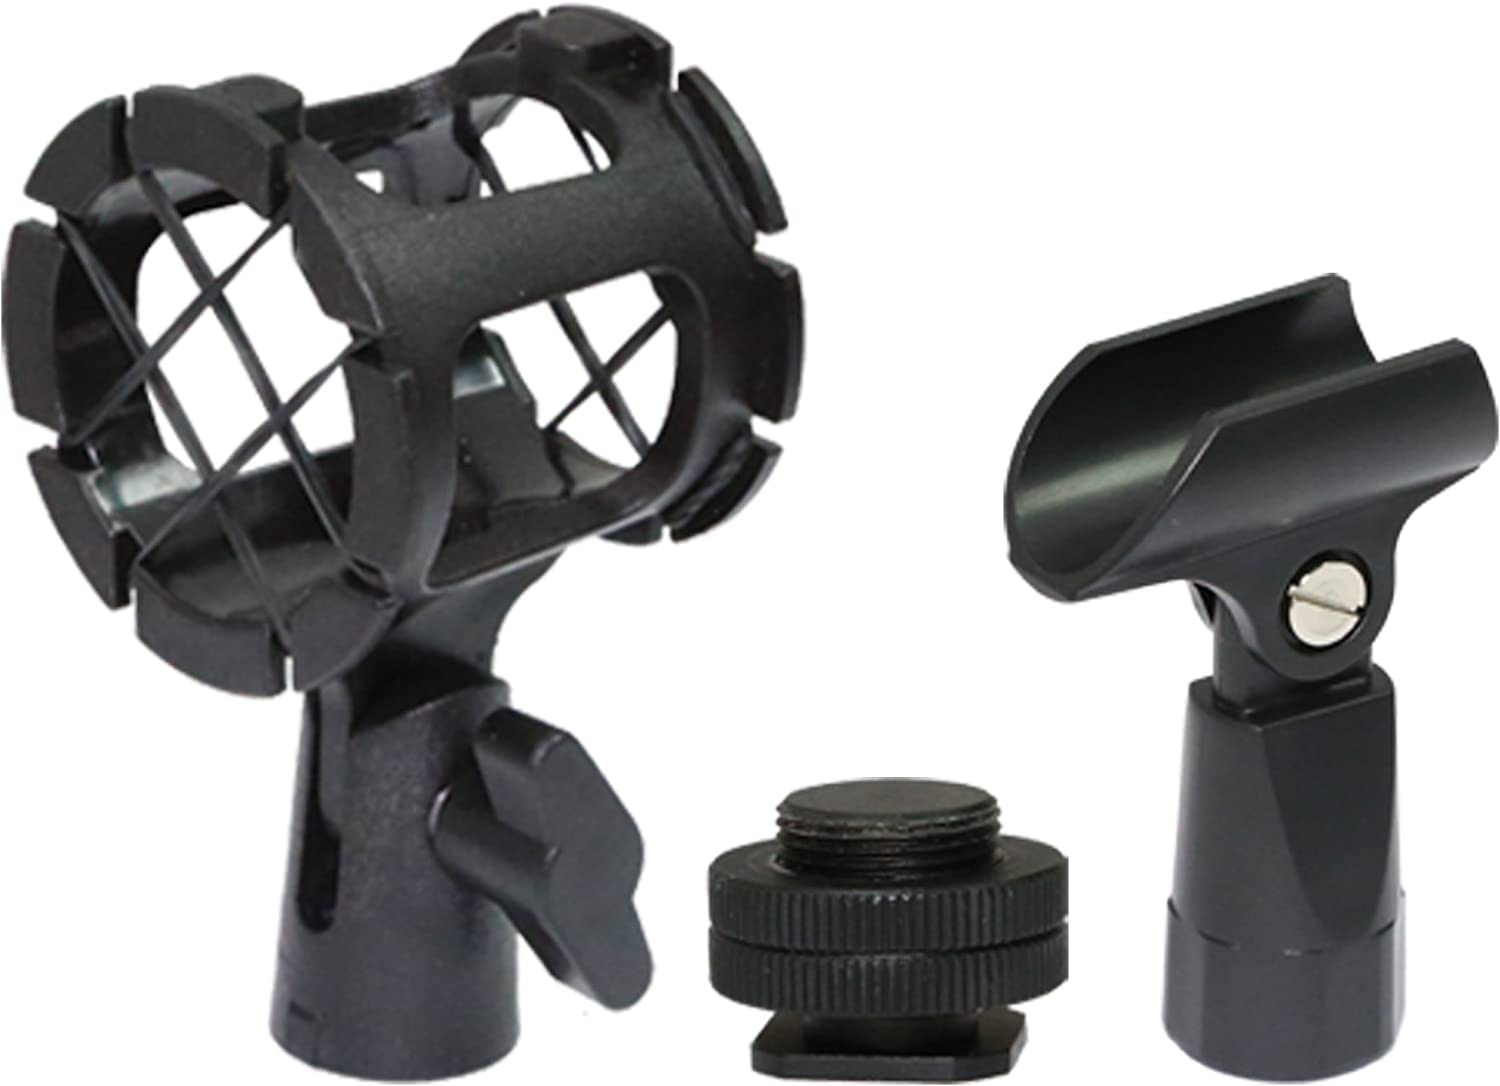 Vidpro XM-88 13-Piece Professional Video /& Broadcast Unidirectional Condenser Microphone Kit